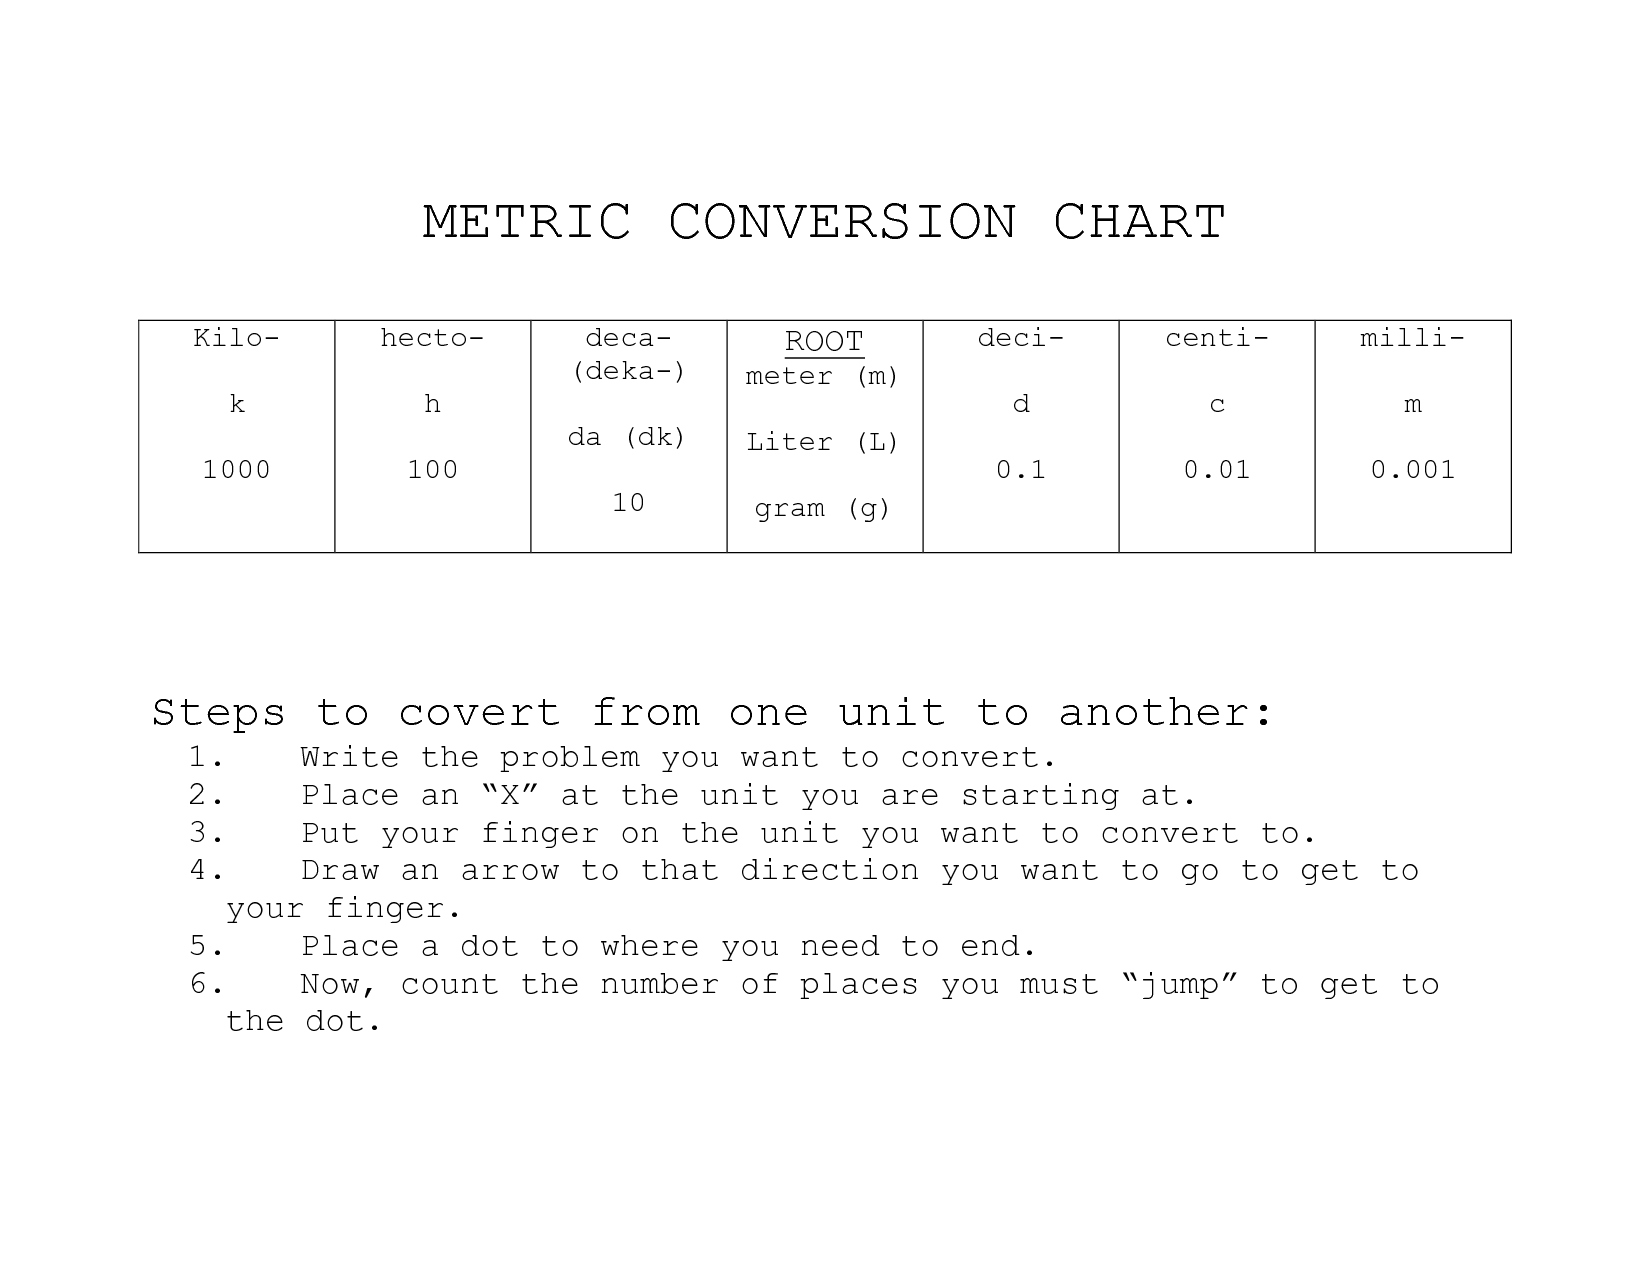 17 Best Images of SI Unit Conversion Worksheet - International System of Units. English Unit System and Conversion for Kilo Deci Centi Milli Chart ...